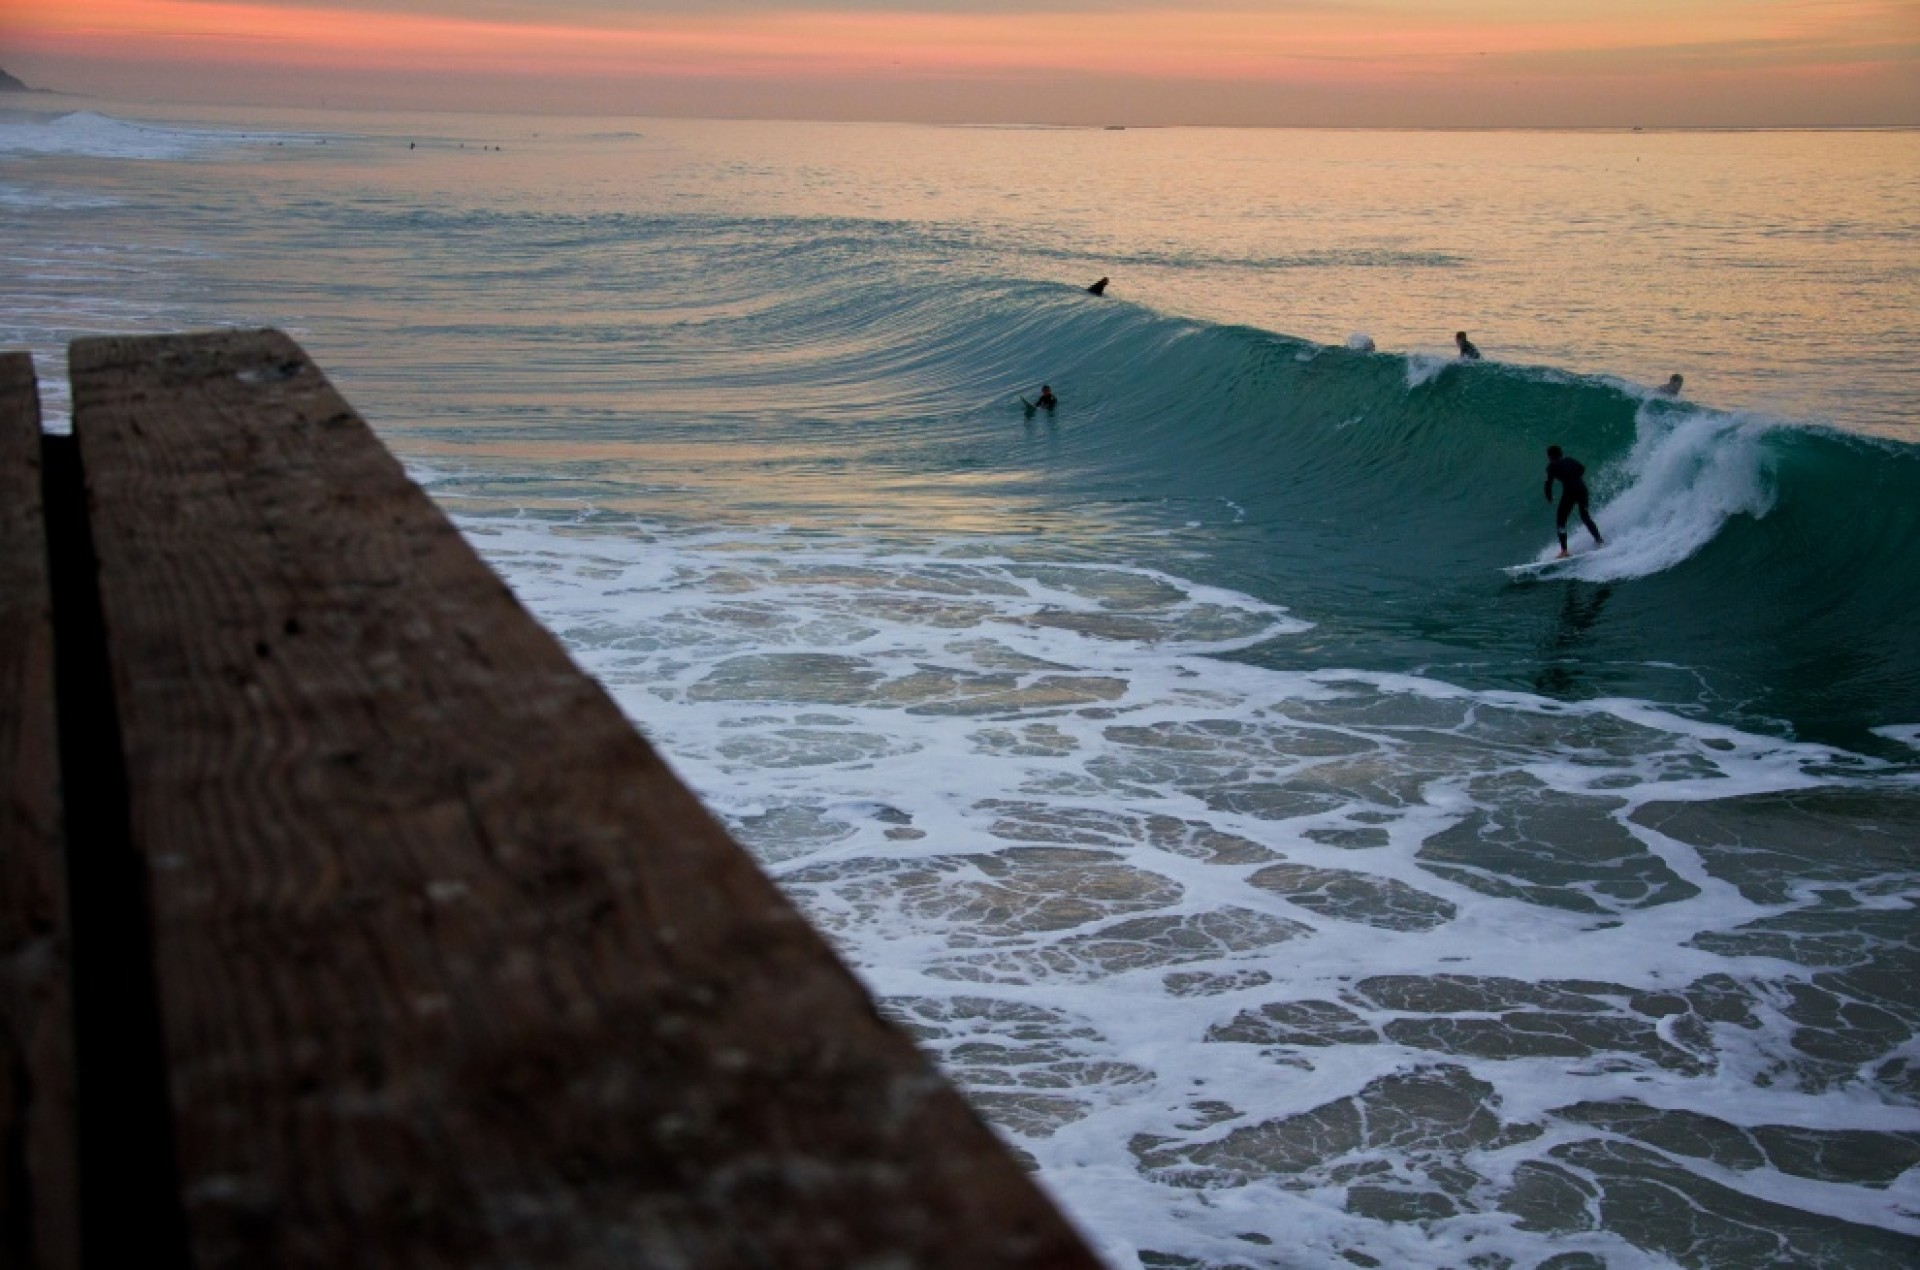 Brandon Jennings's photo of San Clemente Pier